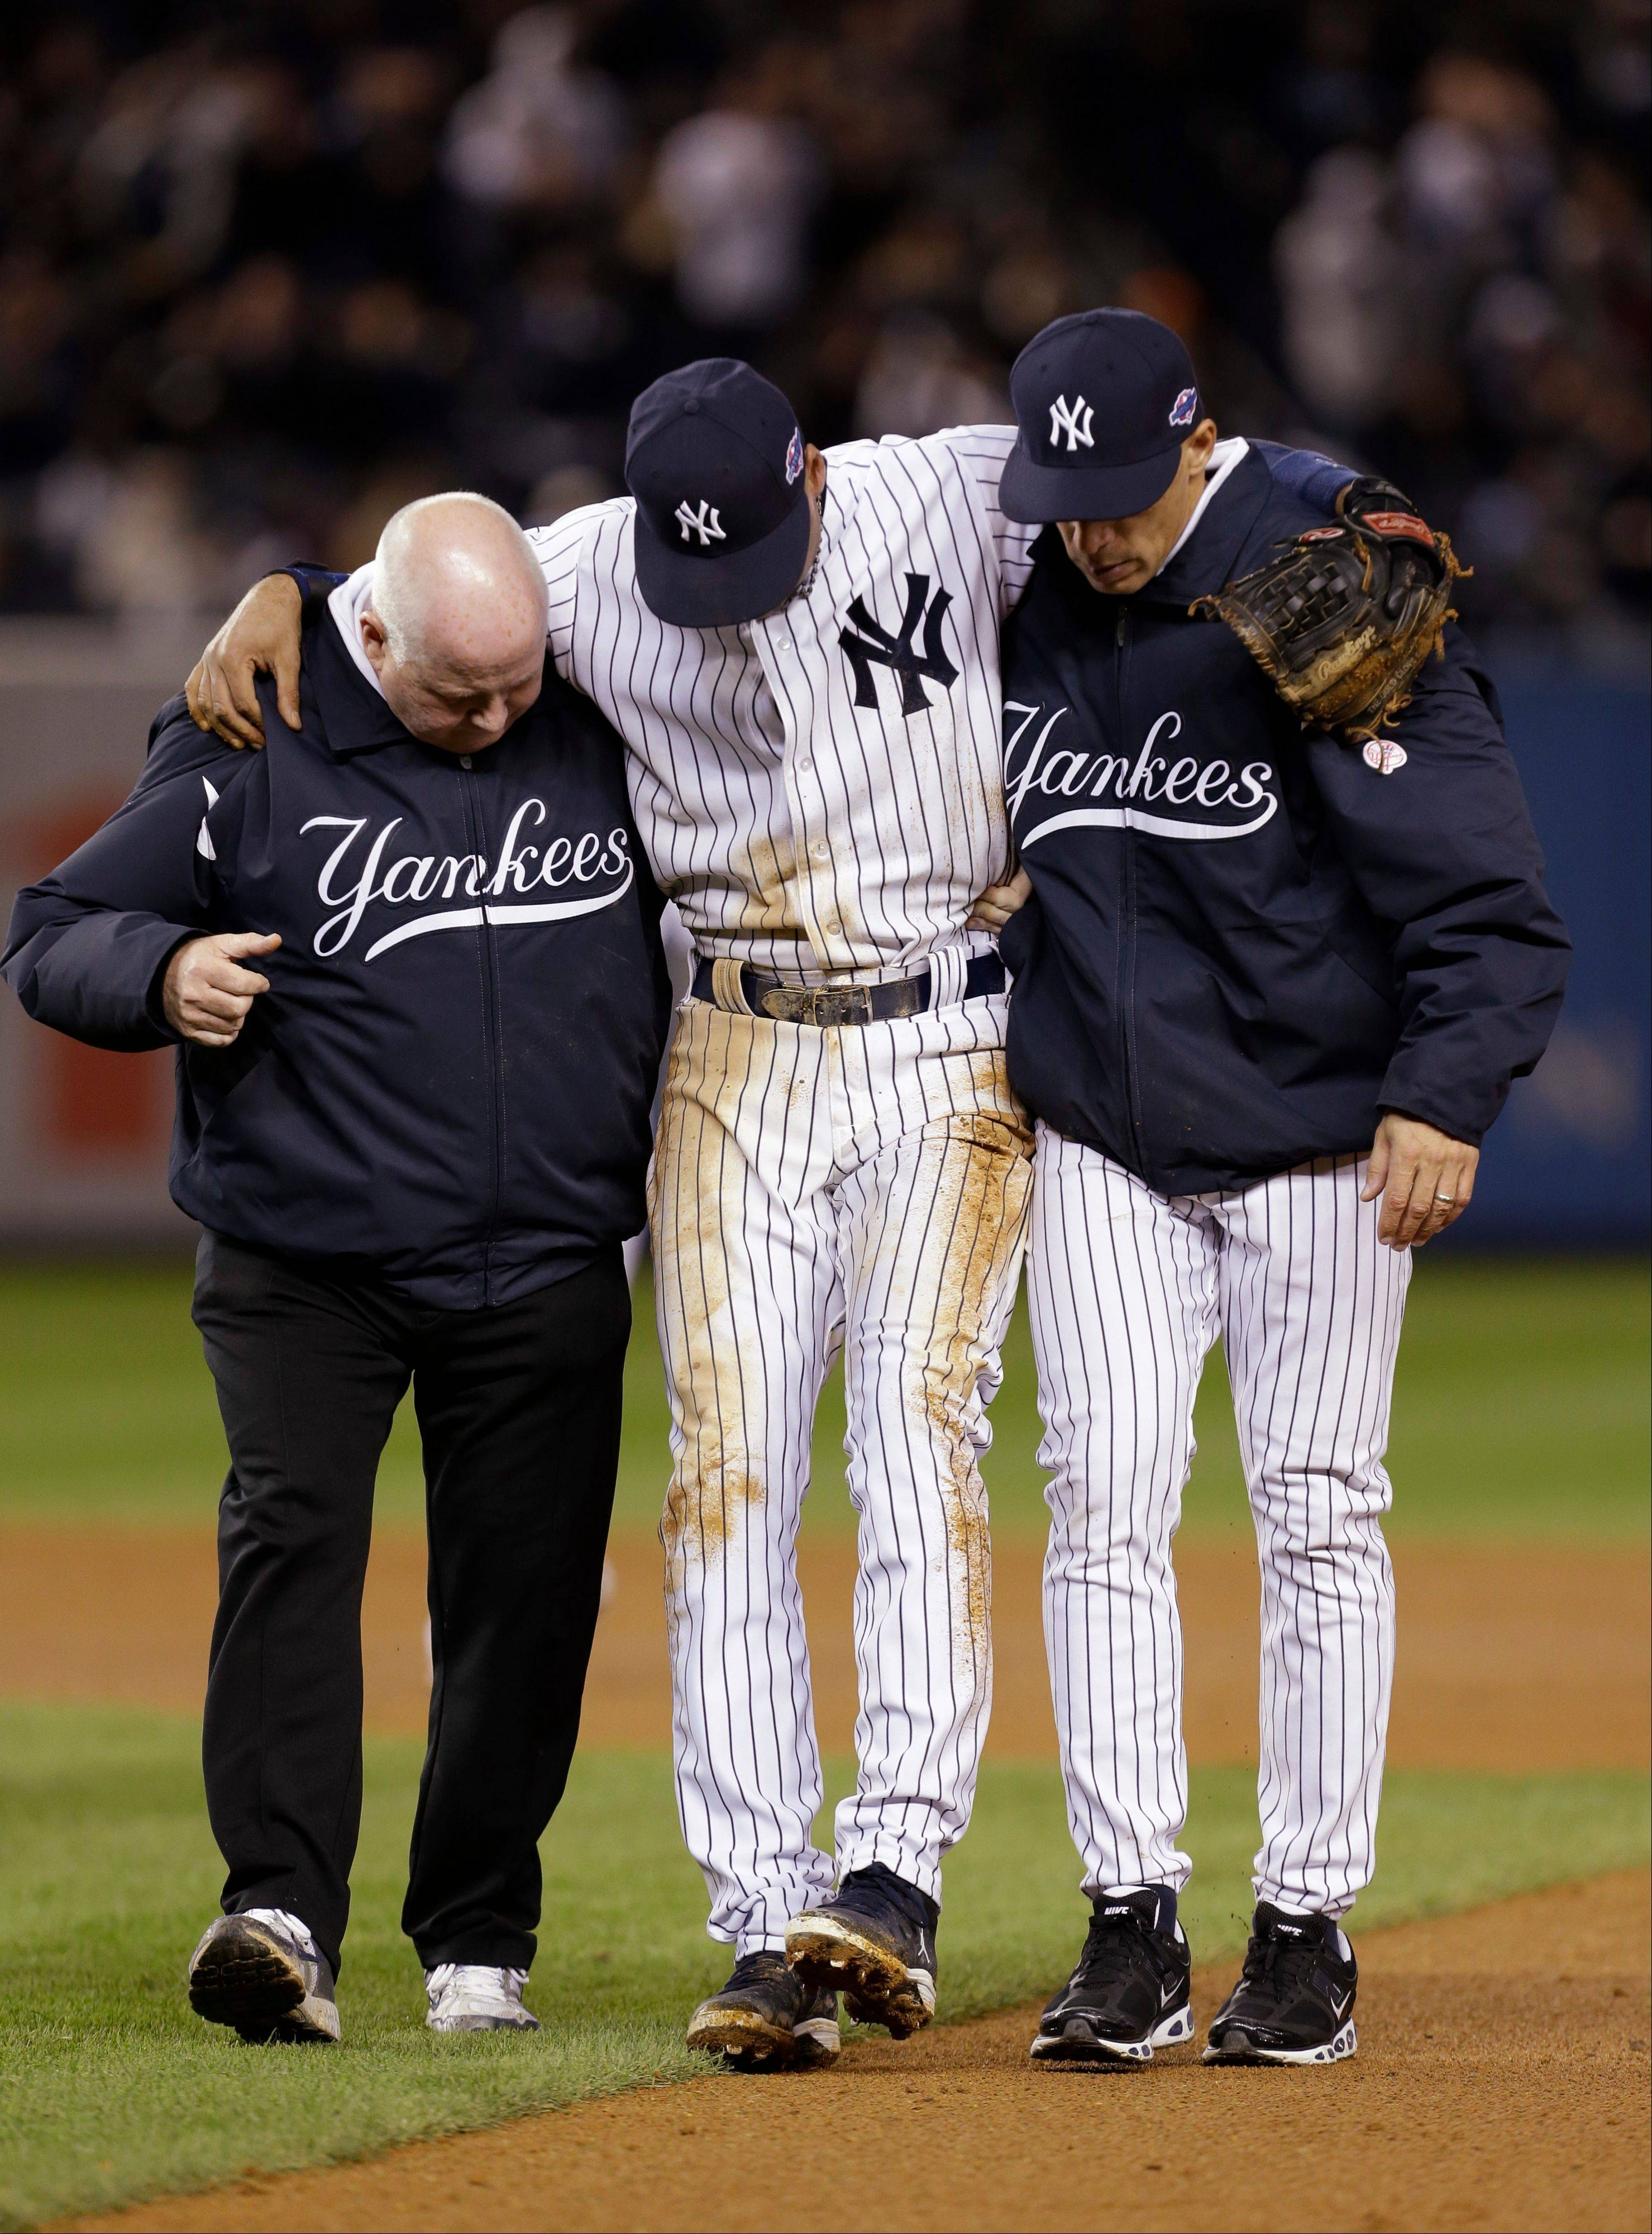 FILE - In an Oct. 14, 2012 file photo trainer Steve Donohue, left, and New York Yankees manager Joe Girardi, right, help Yankees' Derek Jeter off the field after he injured himself during Game 1 of the American League championship series in New York. Derek Jeter will likely join Alex Rodriguez, Mark Teixeira and Curtis Granderson on the New York Yankees' star-studded disabled list for the season opener against the Boston Red Sox on April 1, 2013.